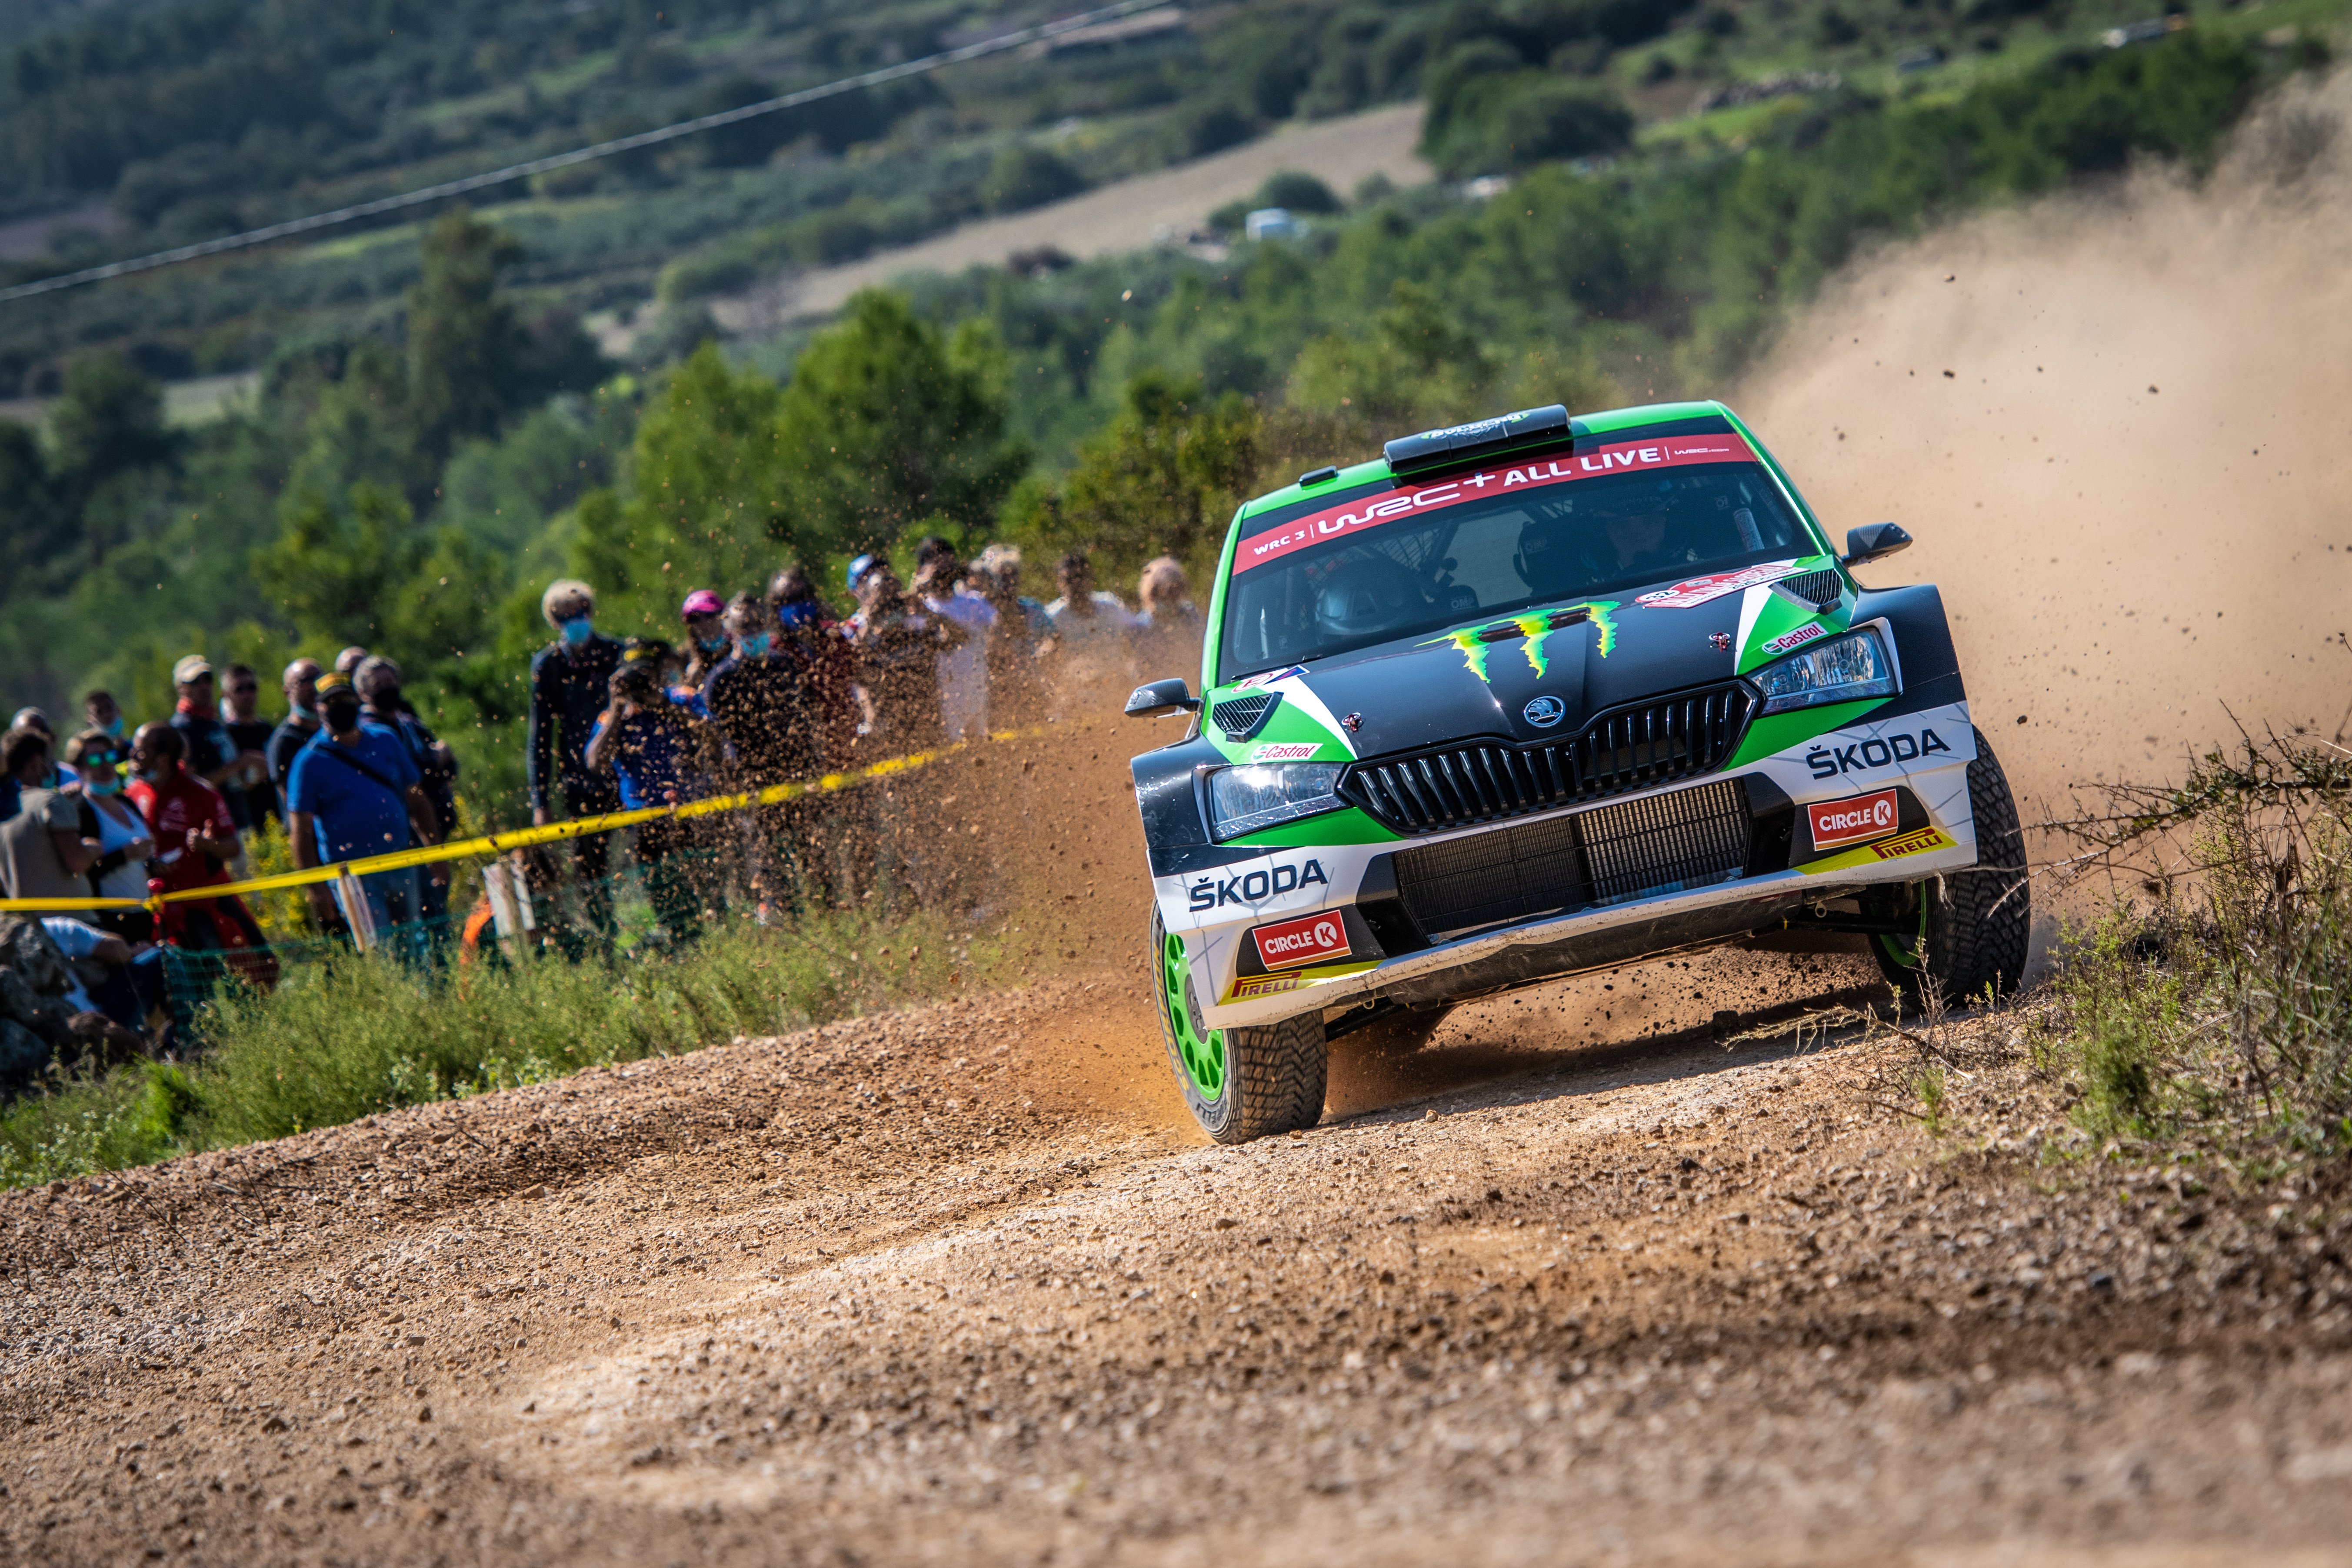 Rally Italia Sardegna: Two SKODA crews on top of WRC2 and WRC3 after tough first leg - Image 3